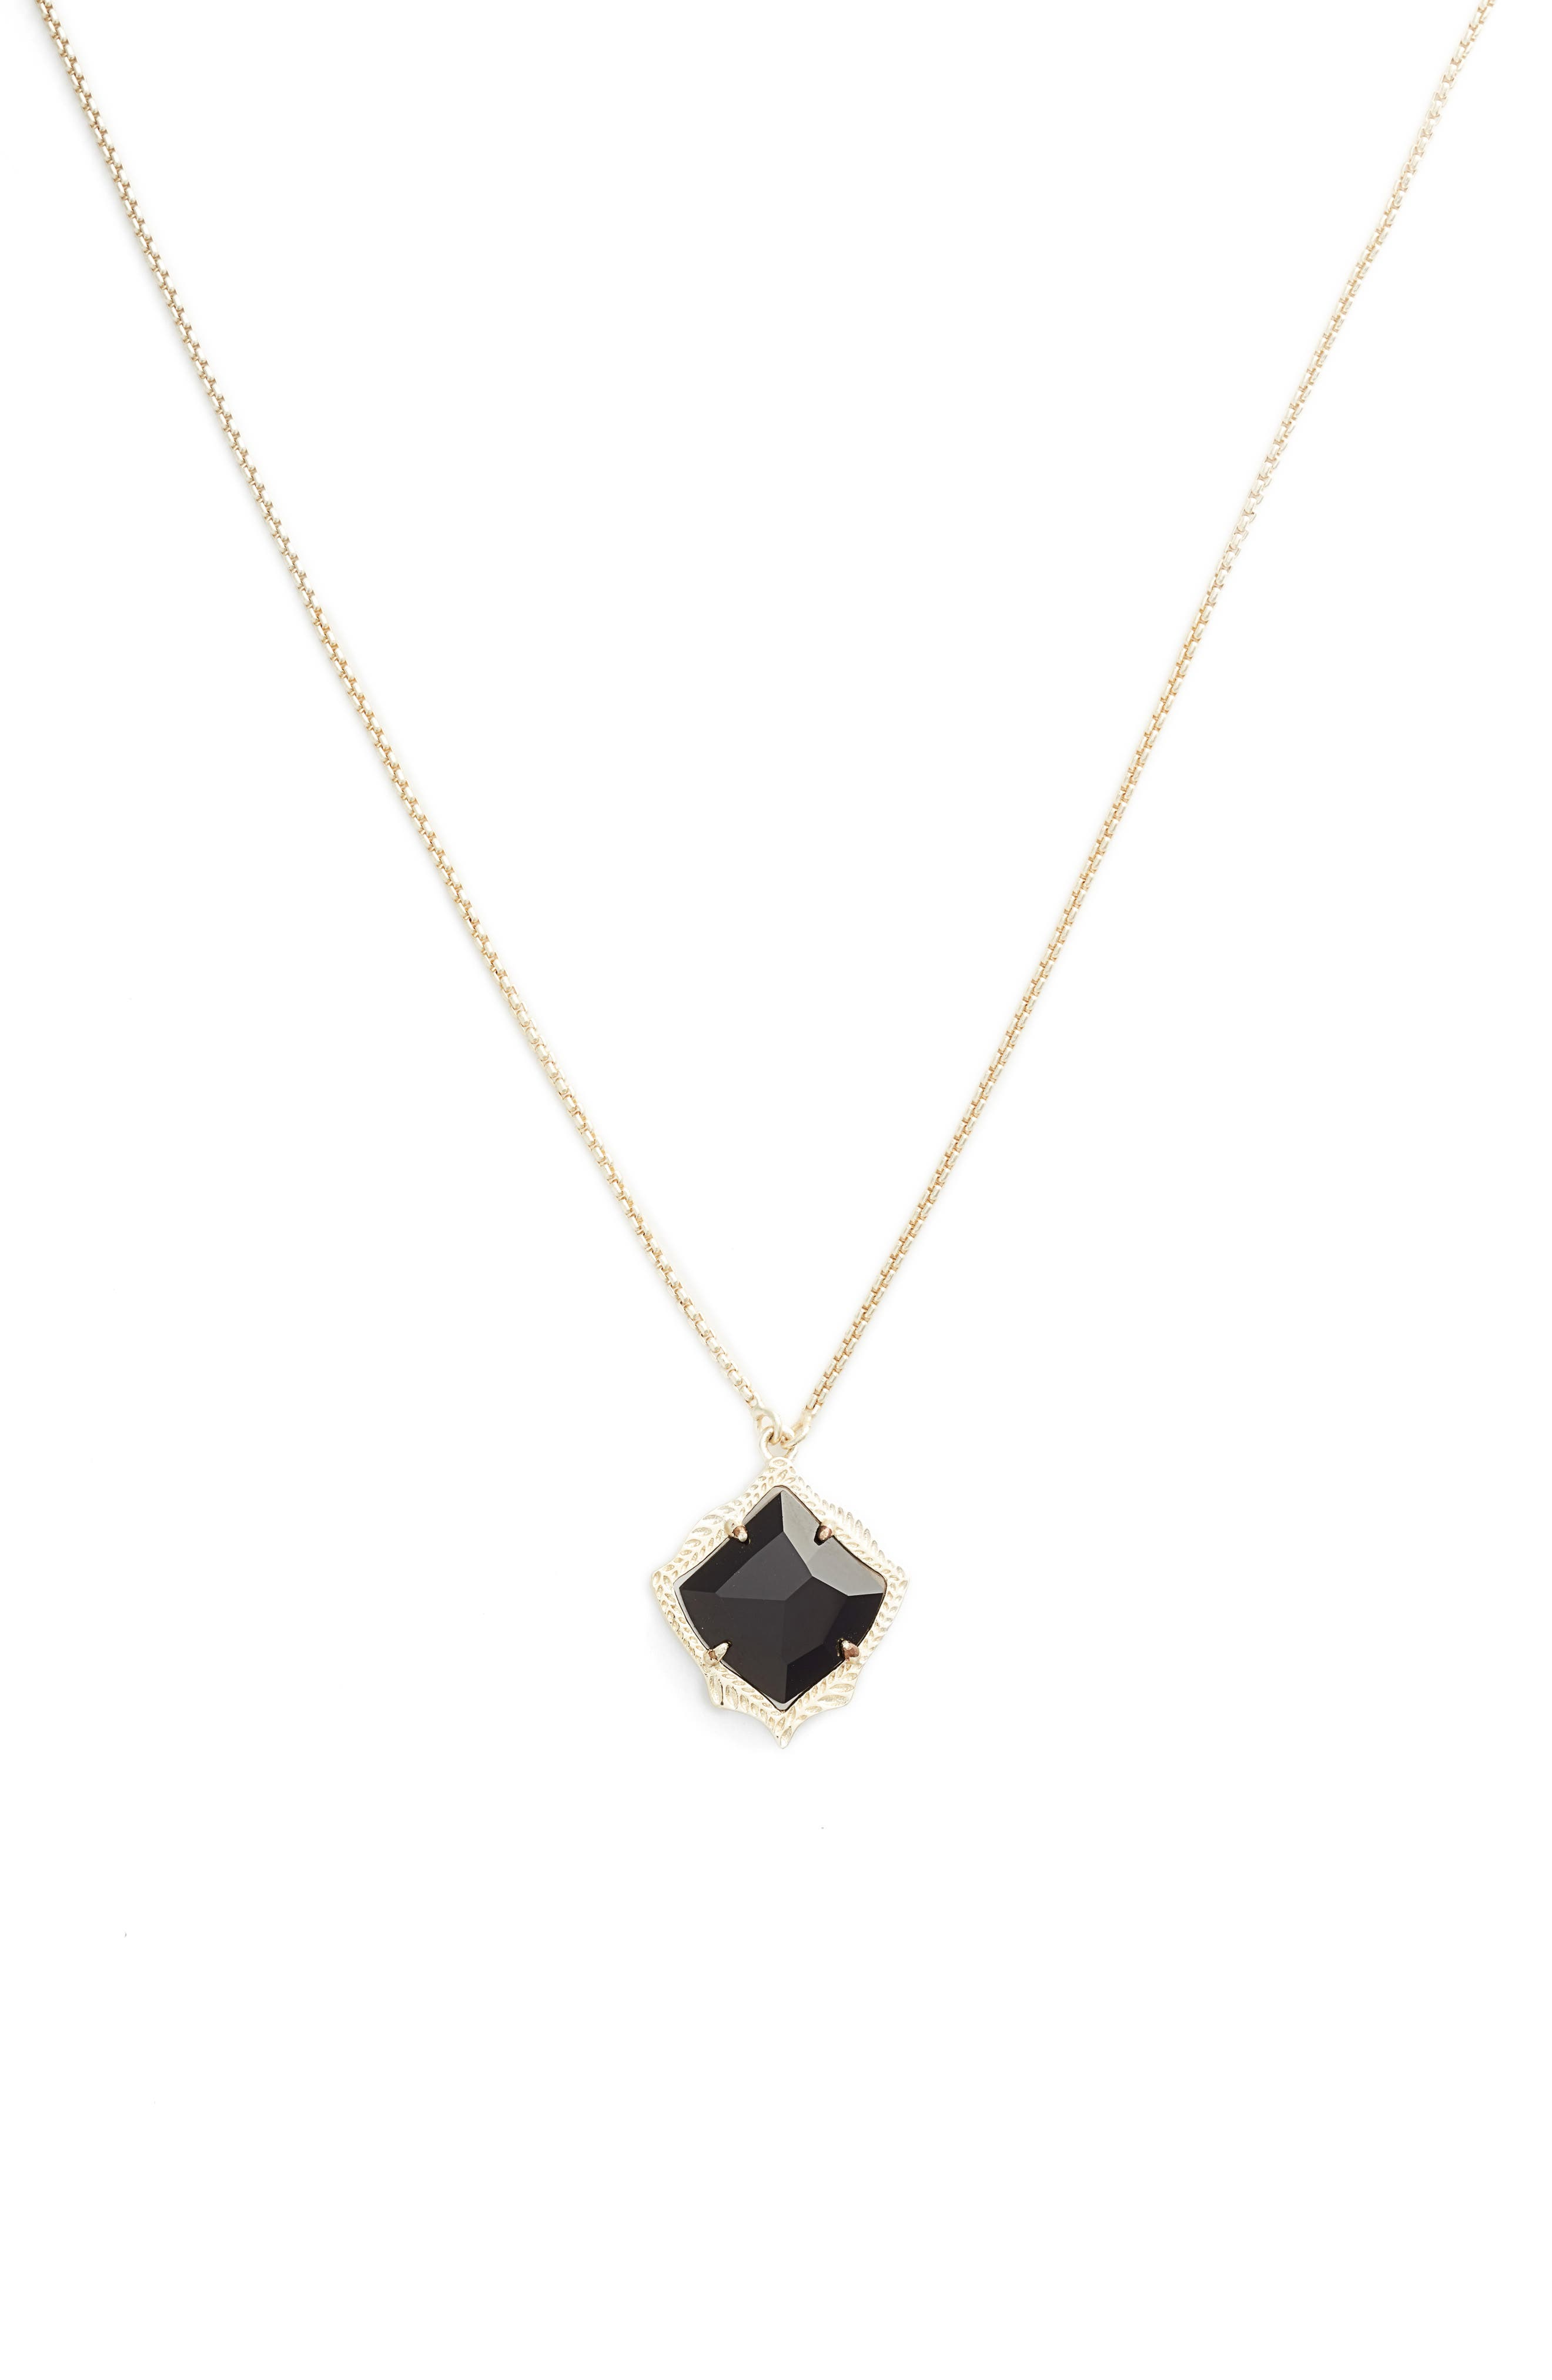 Kacey Adjustable Pendant Necklace,                             Main thumbnail 1, color,                             BLACK OPAQUE GLASS/ GOLD